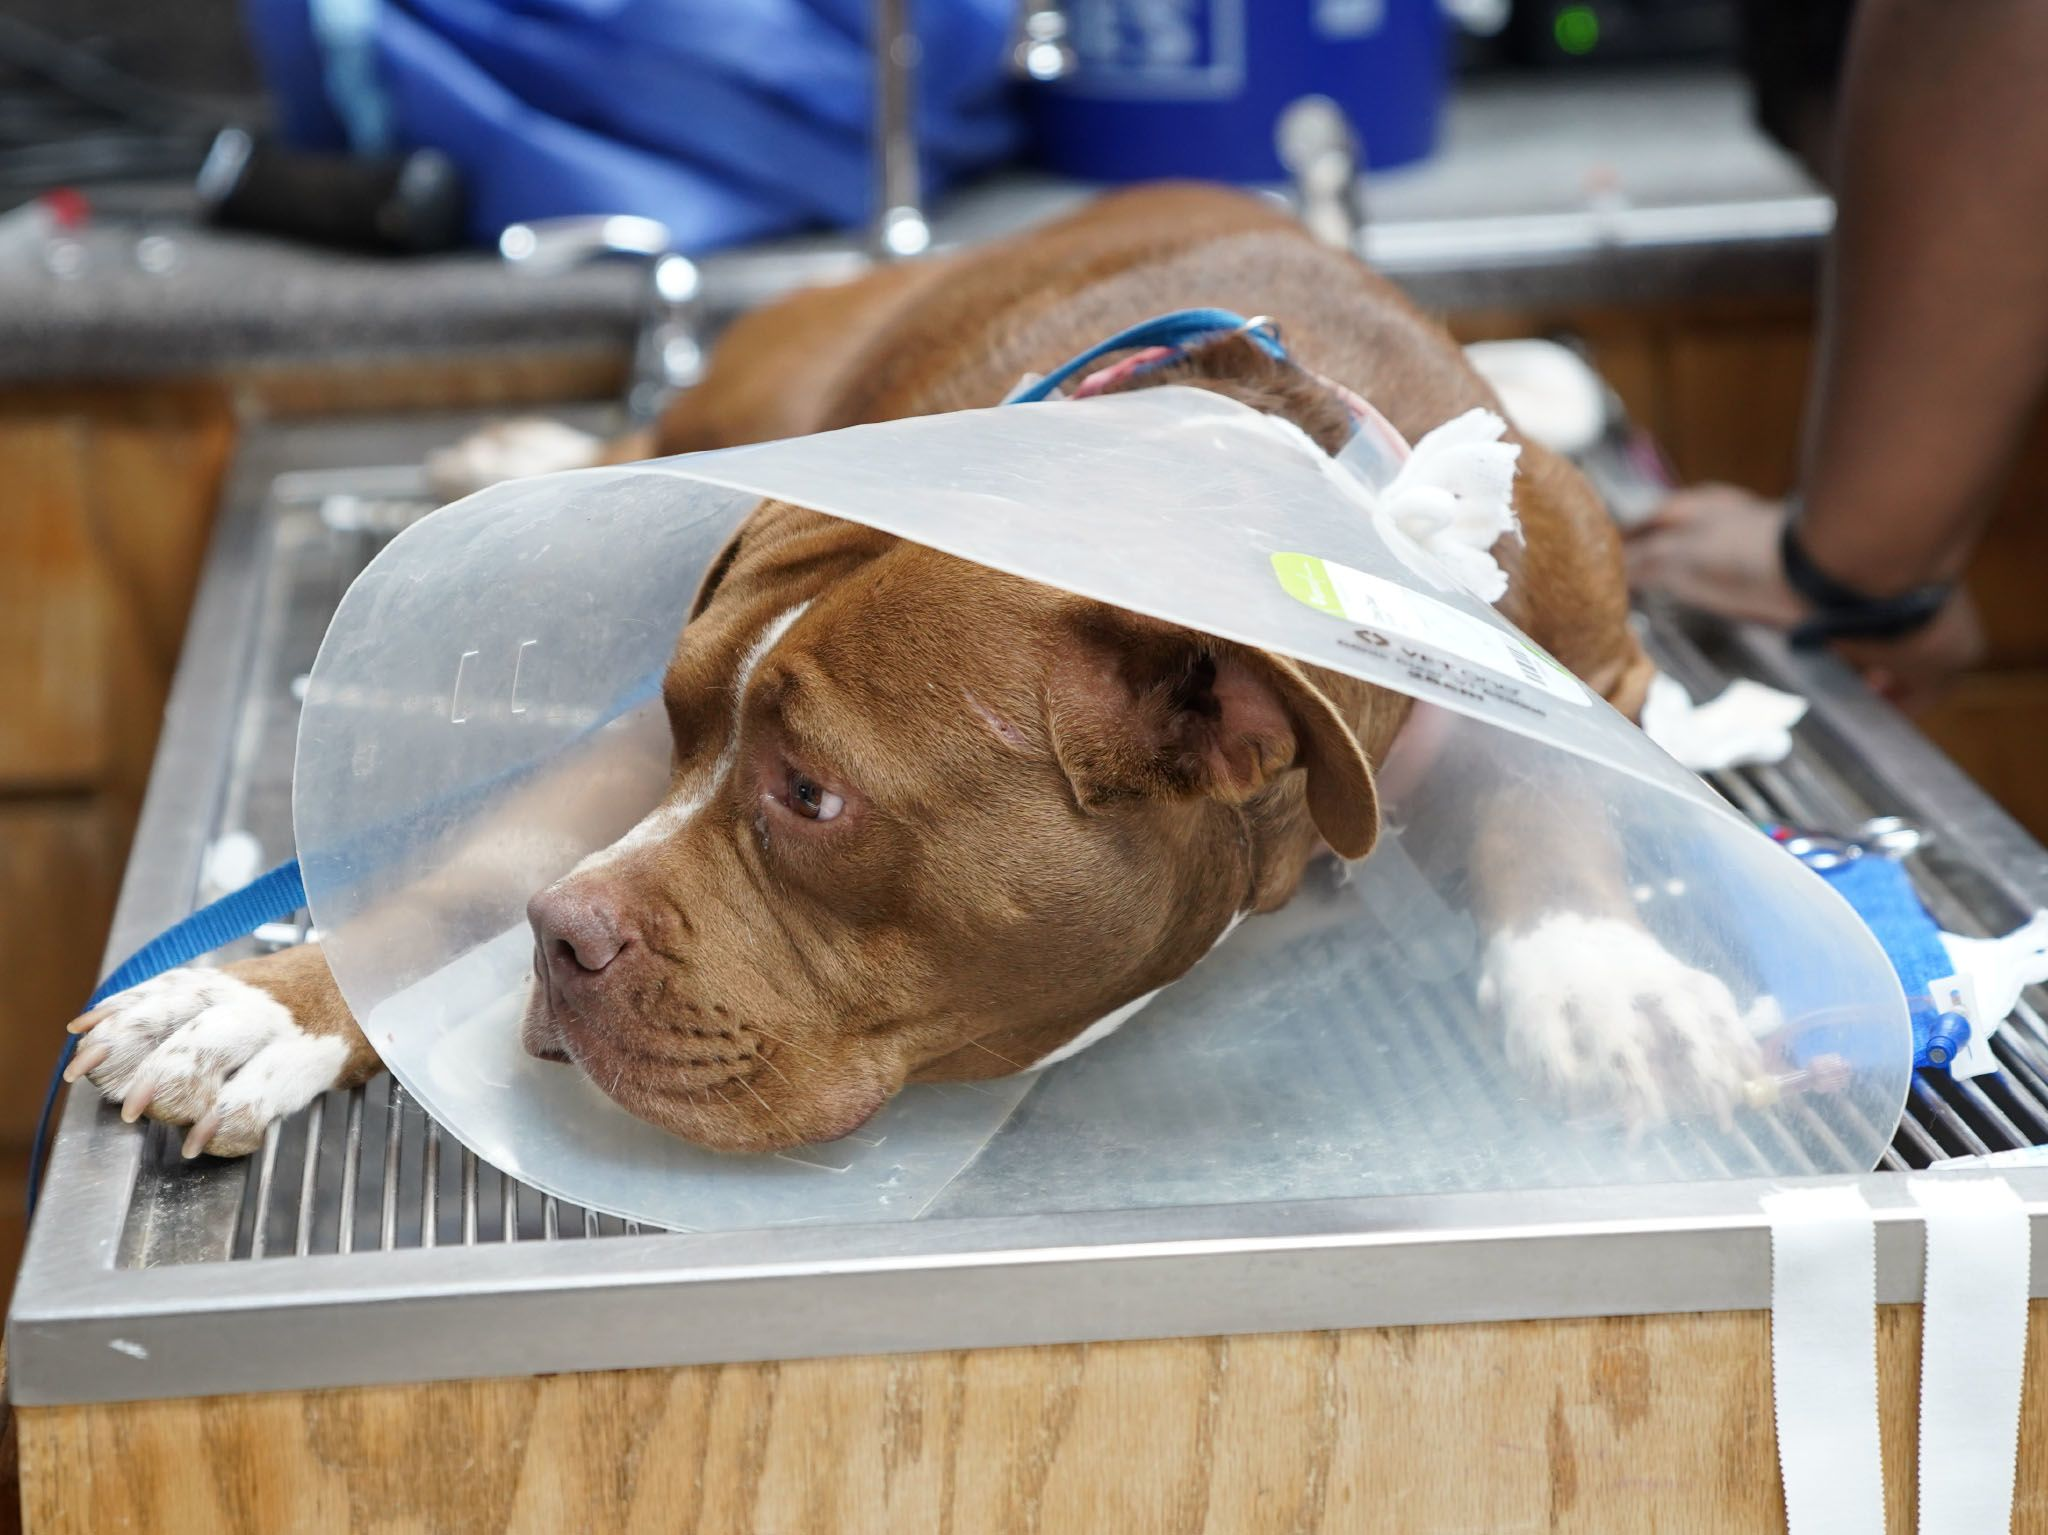 Mauve the rescue Pit Bull wears an Elizabethan collar after surgery to protect her sutures at... [Photo of the day - May 2021]